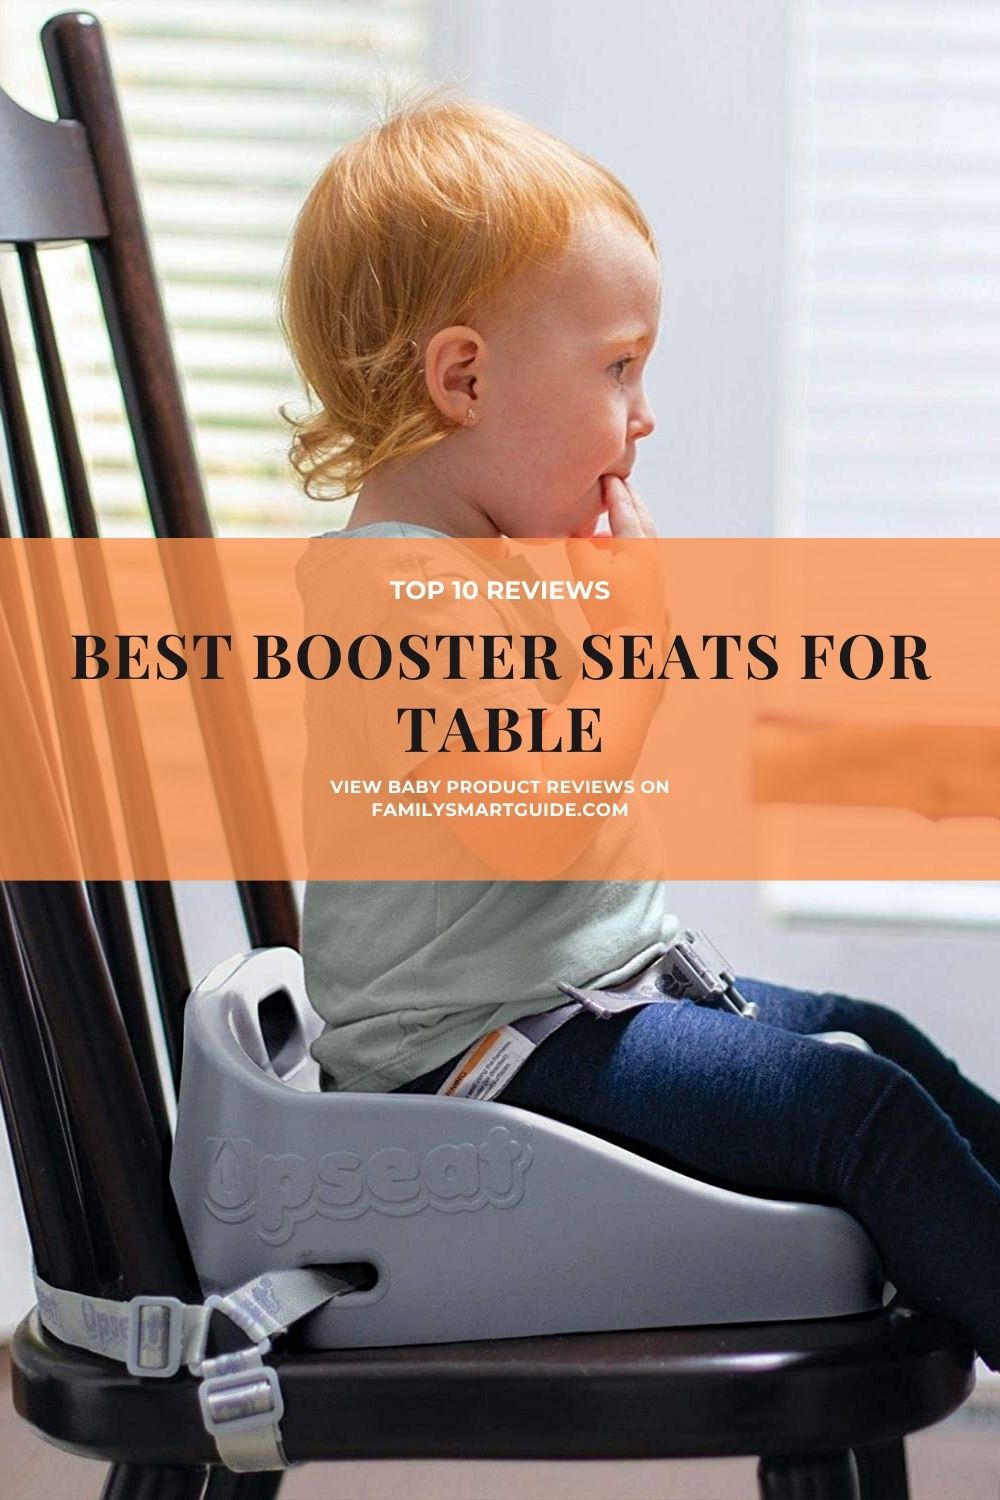 Top 10 Booster Seats for Table Reviews